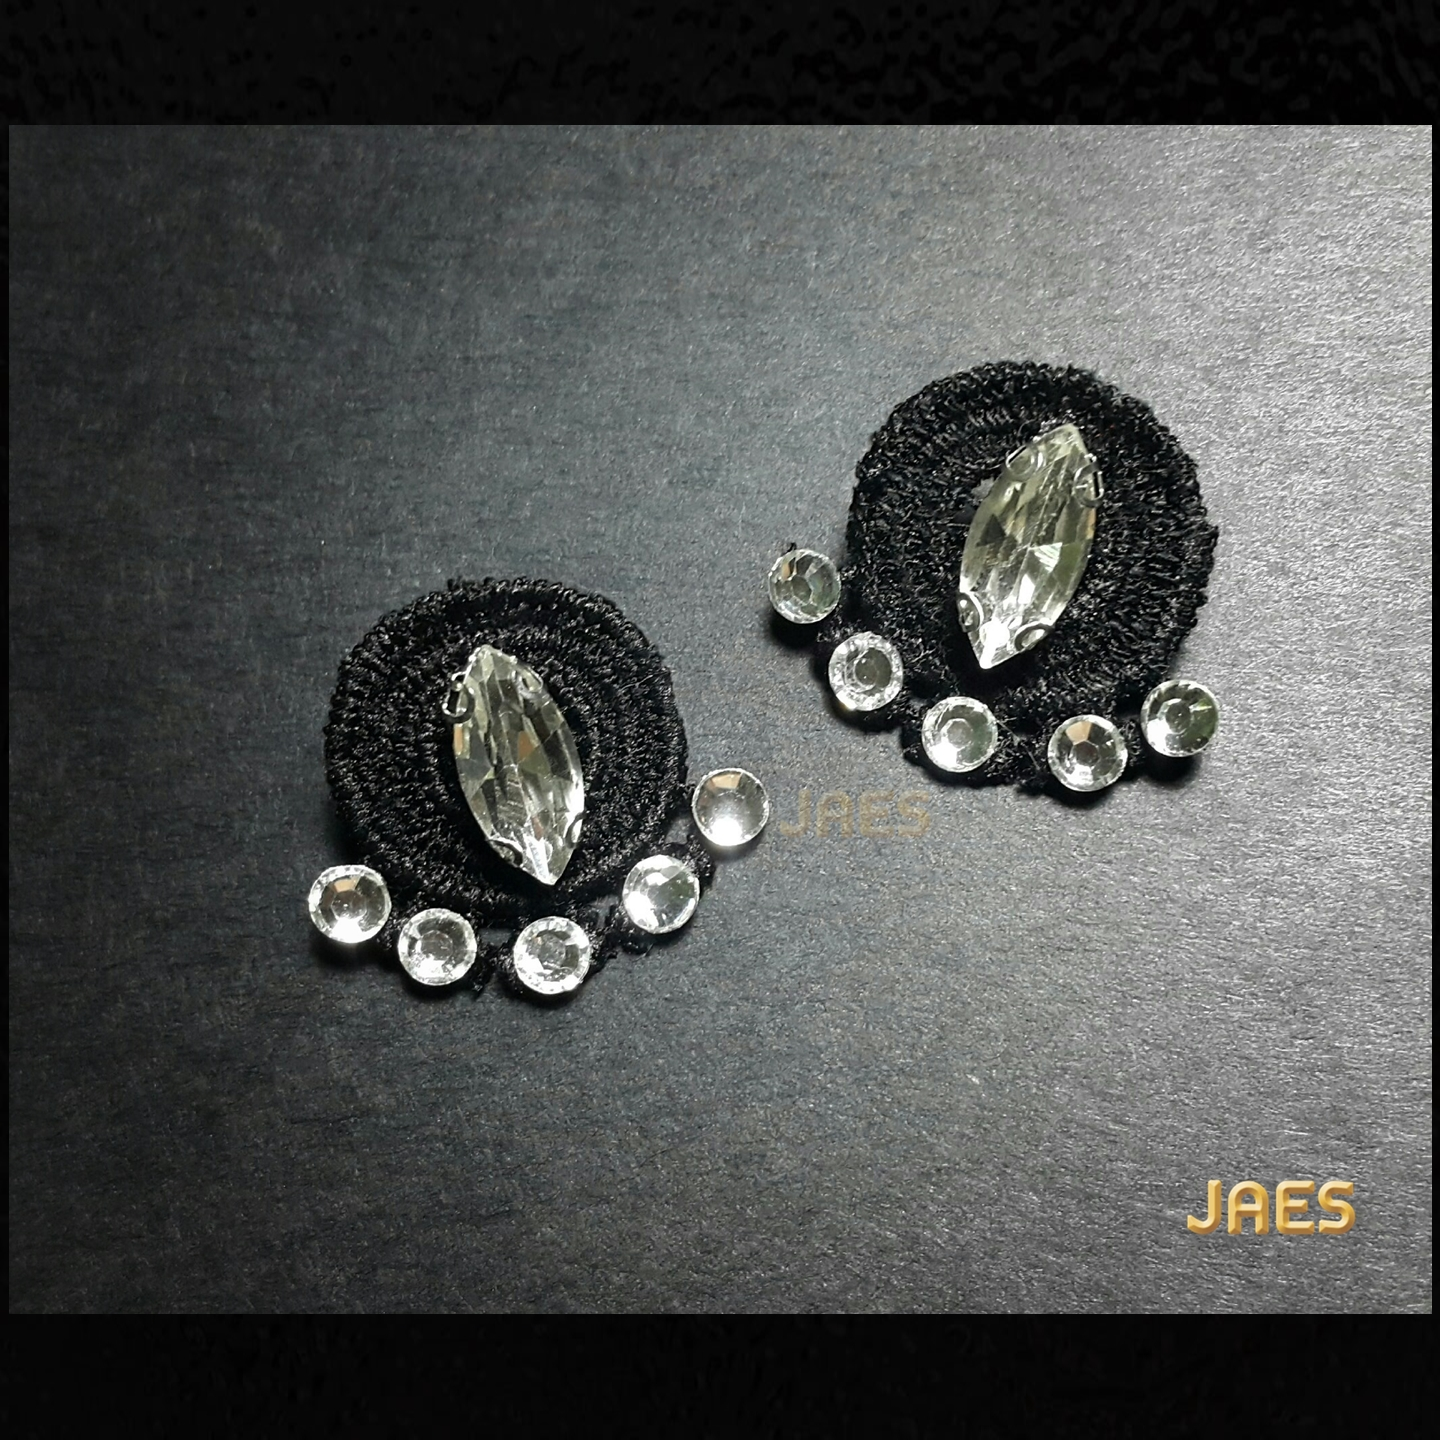 JAES - The Mystery 4